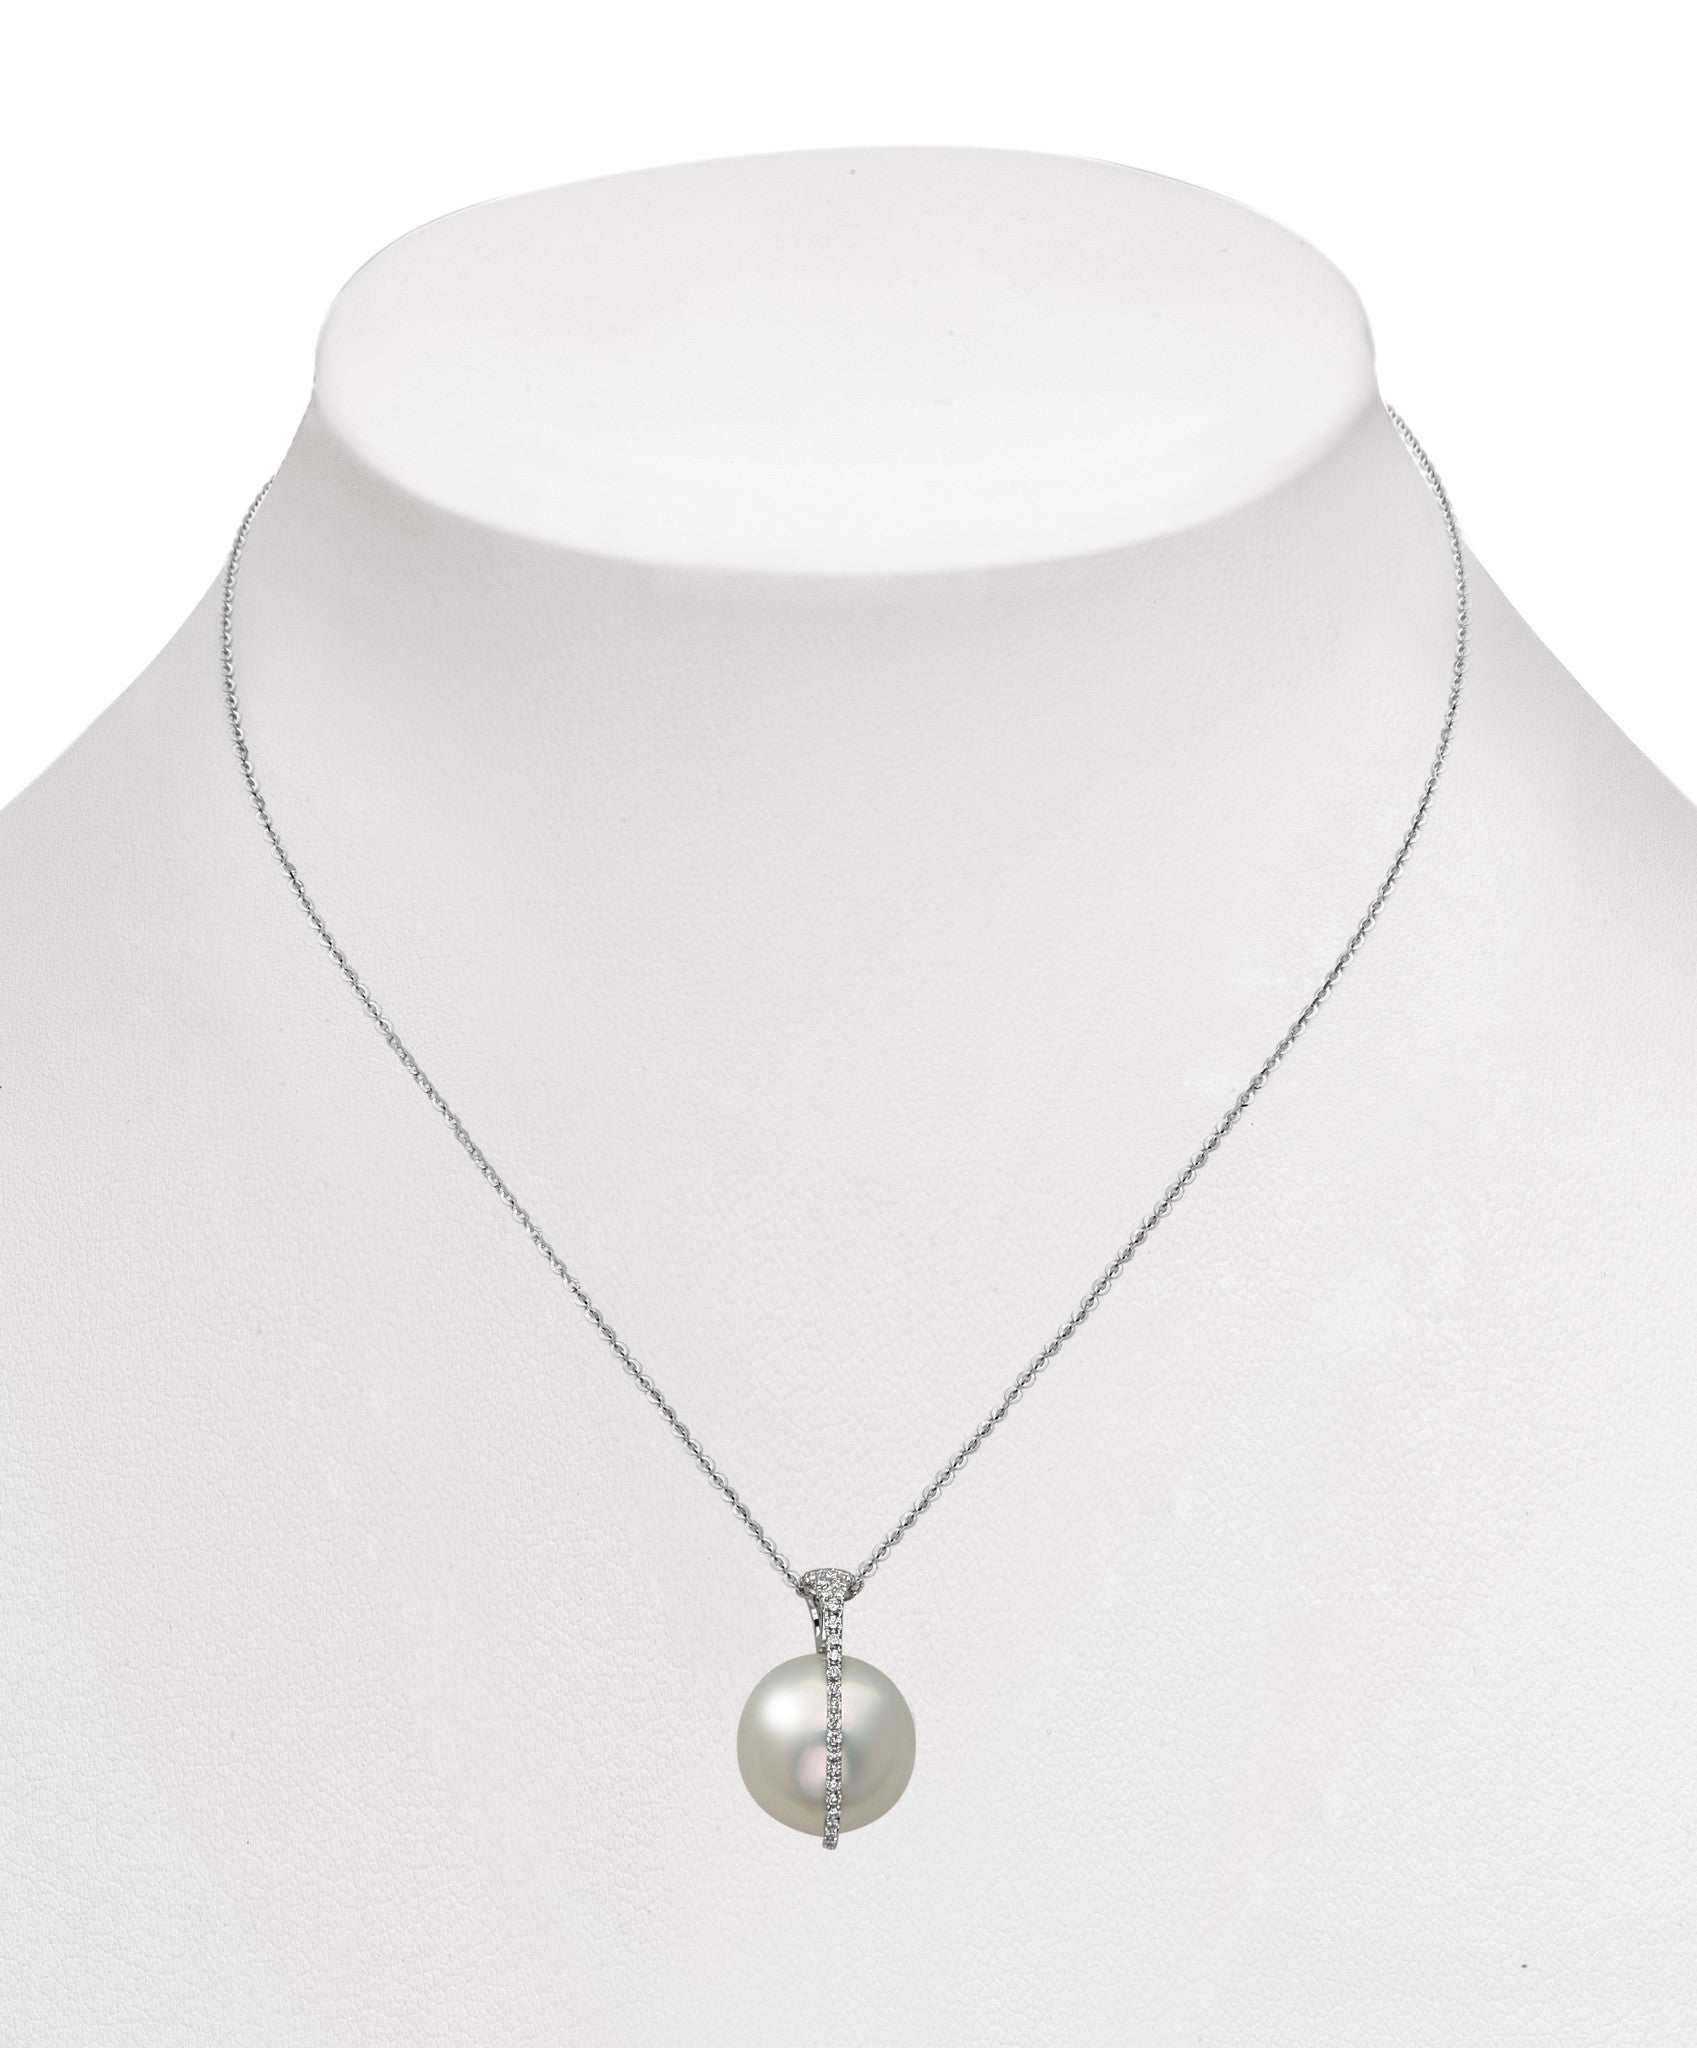 Galaxy Collection 12-13mm White South Sea Pearl and Diamond Pendant Necklace